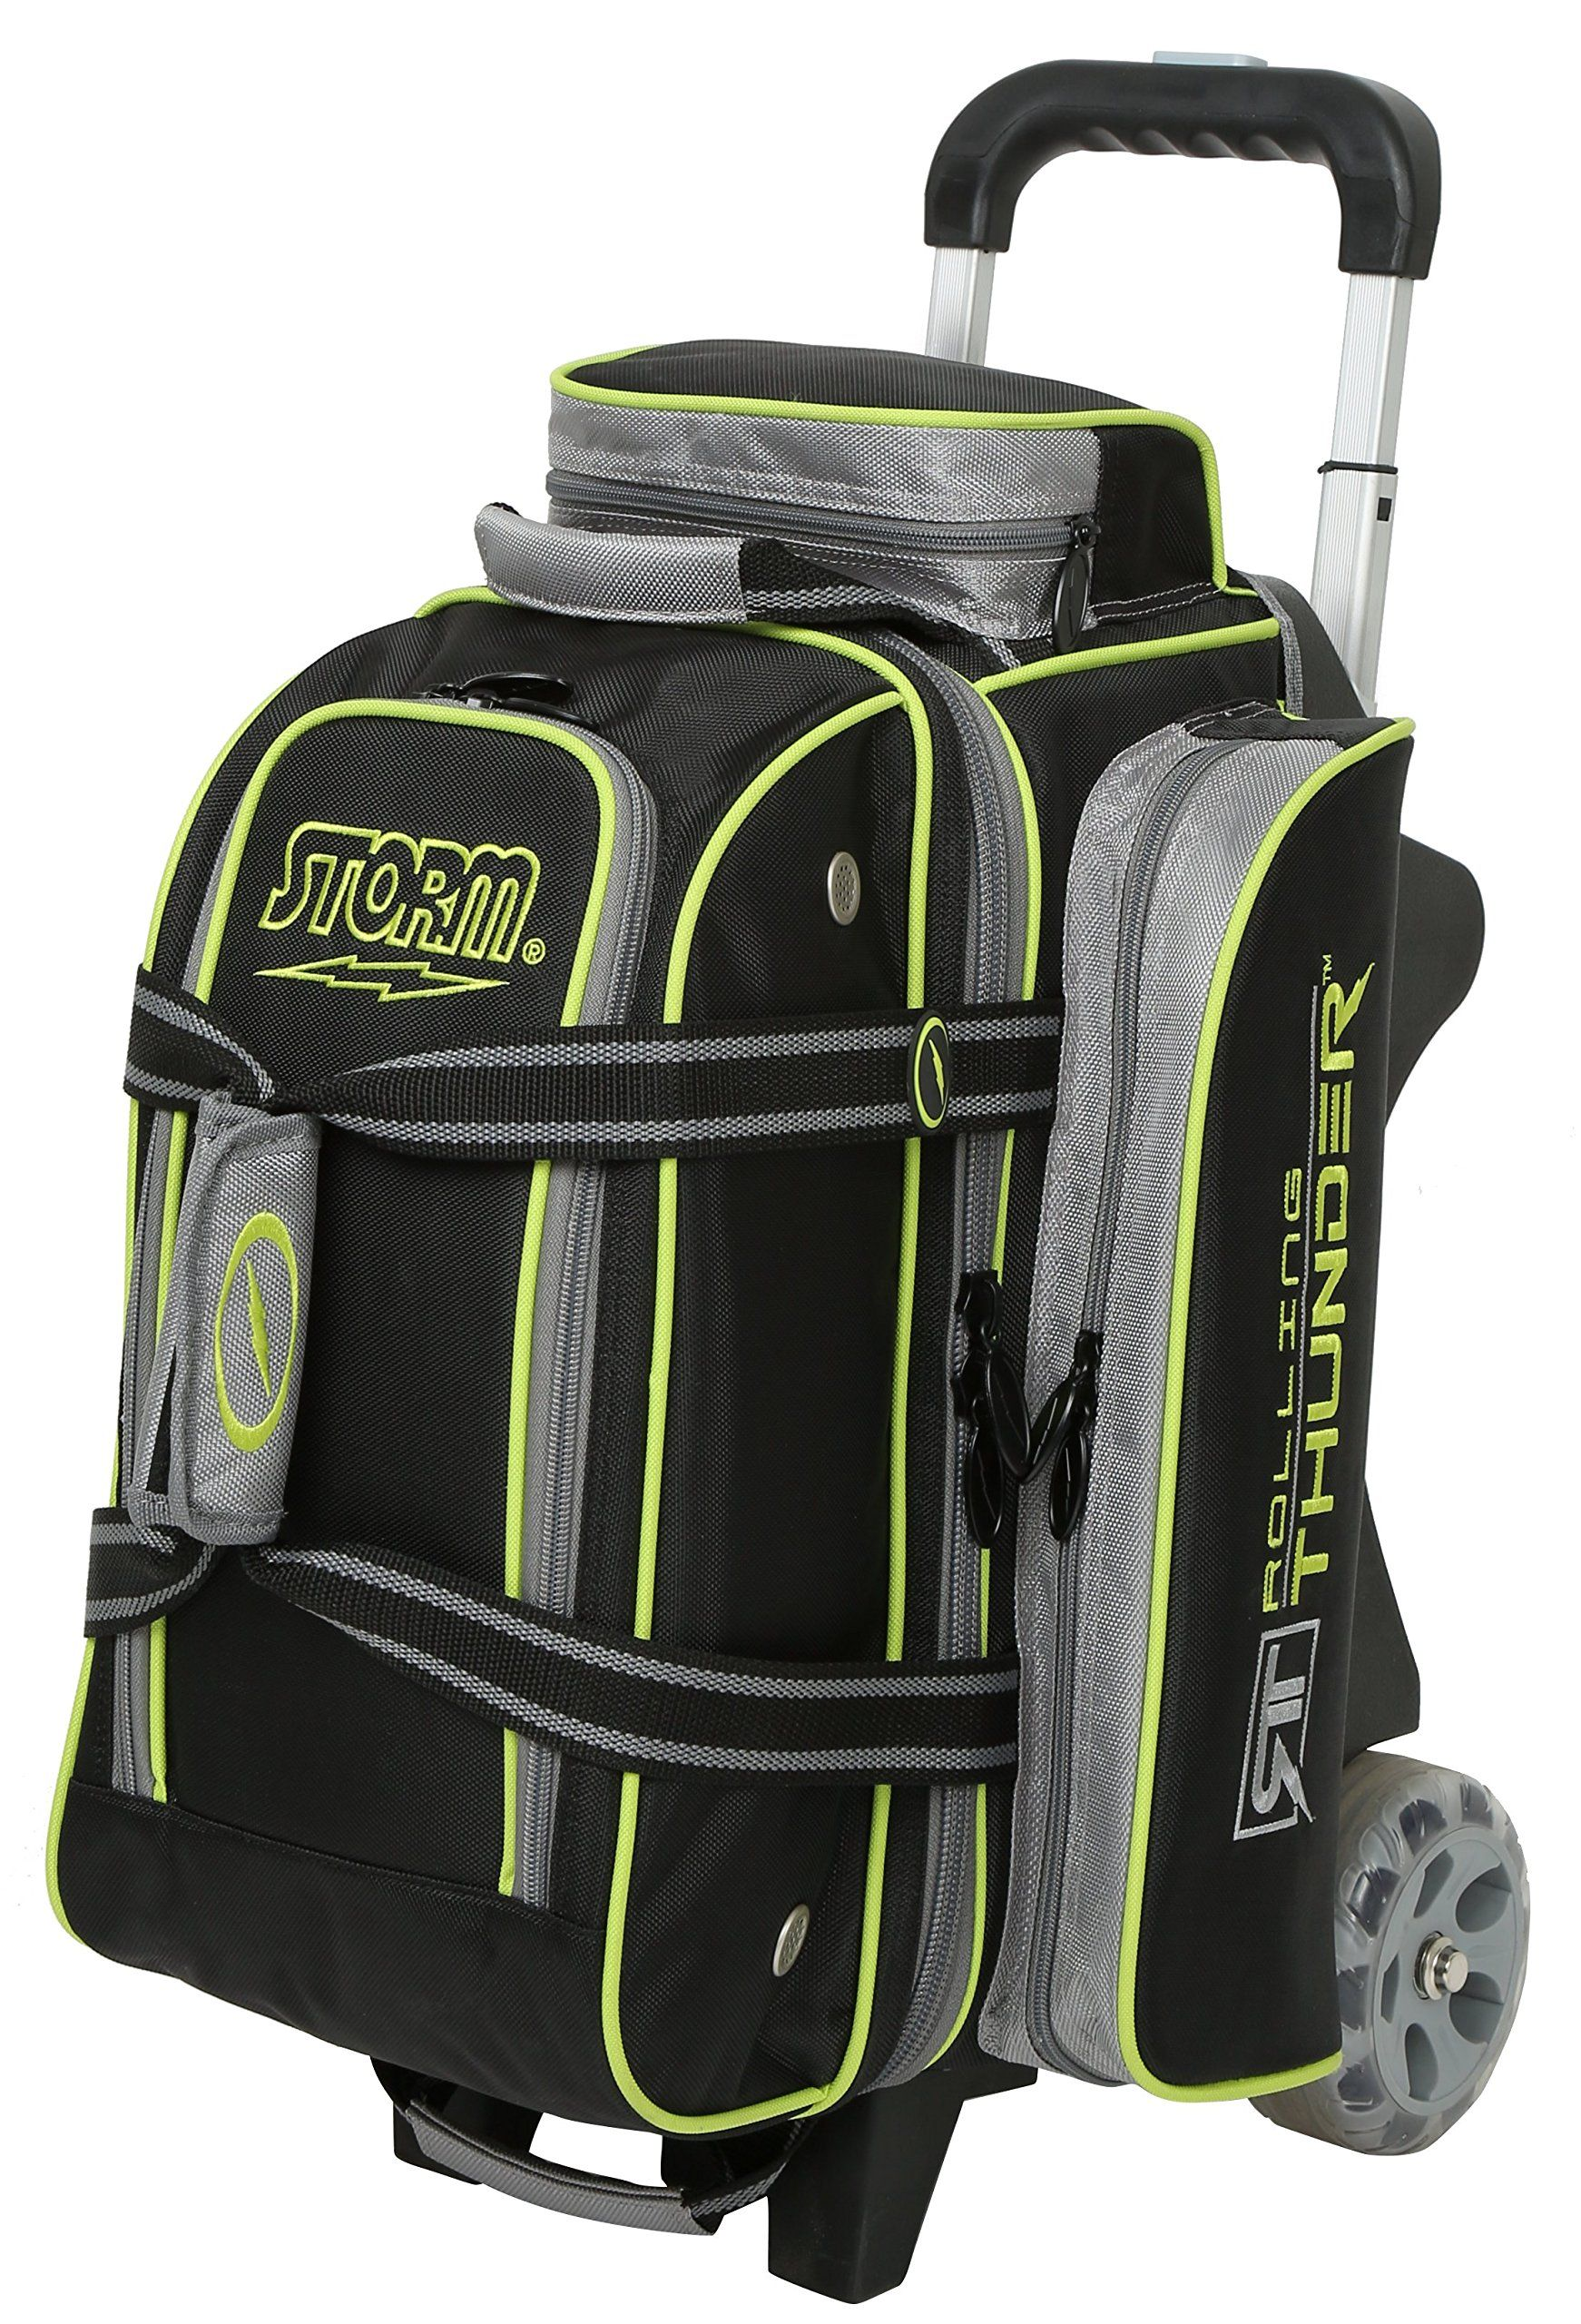 Storm Bowling Products 2 Ball Rolling Thunder Bowling Bag Black Gray Lime Read More Reviews Of The Produ In 2020 Storm Bowling Bowling Bags Bowling Shoes